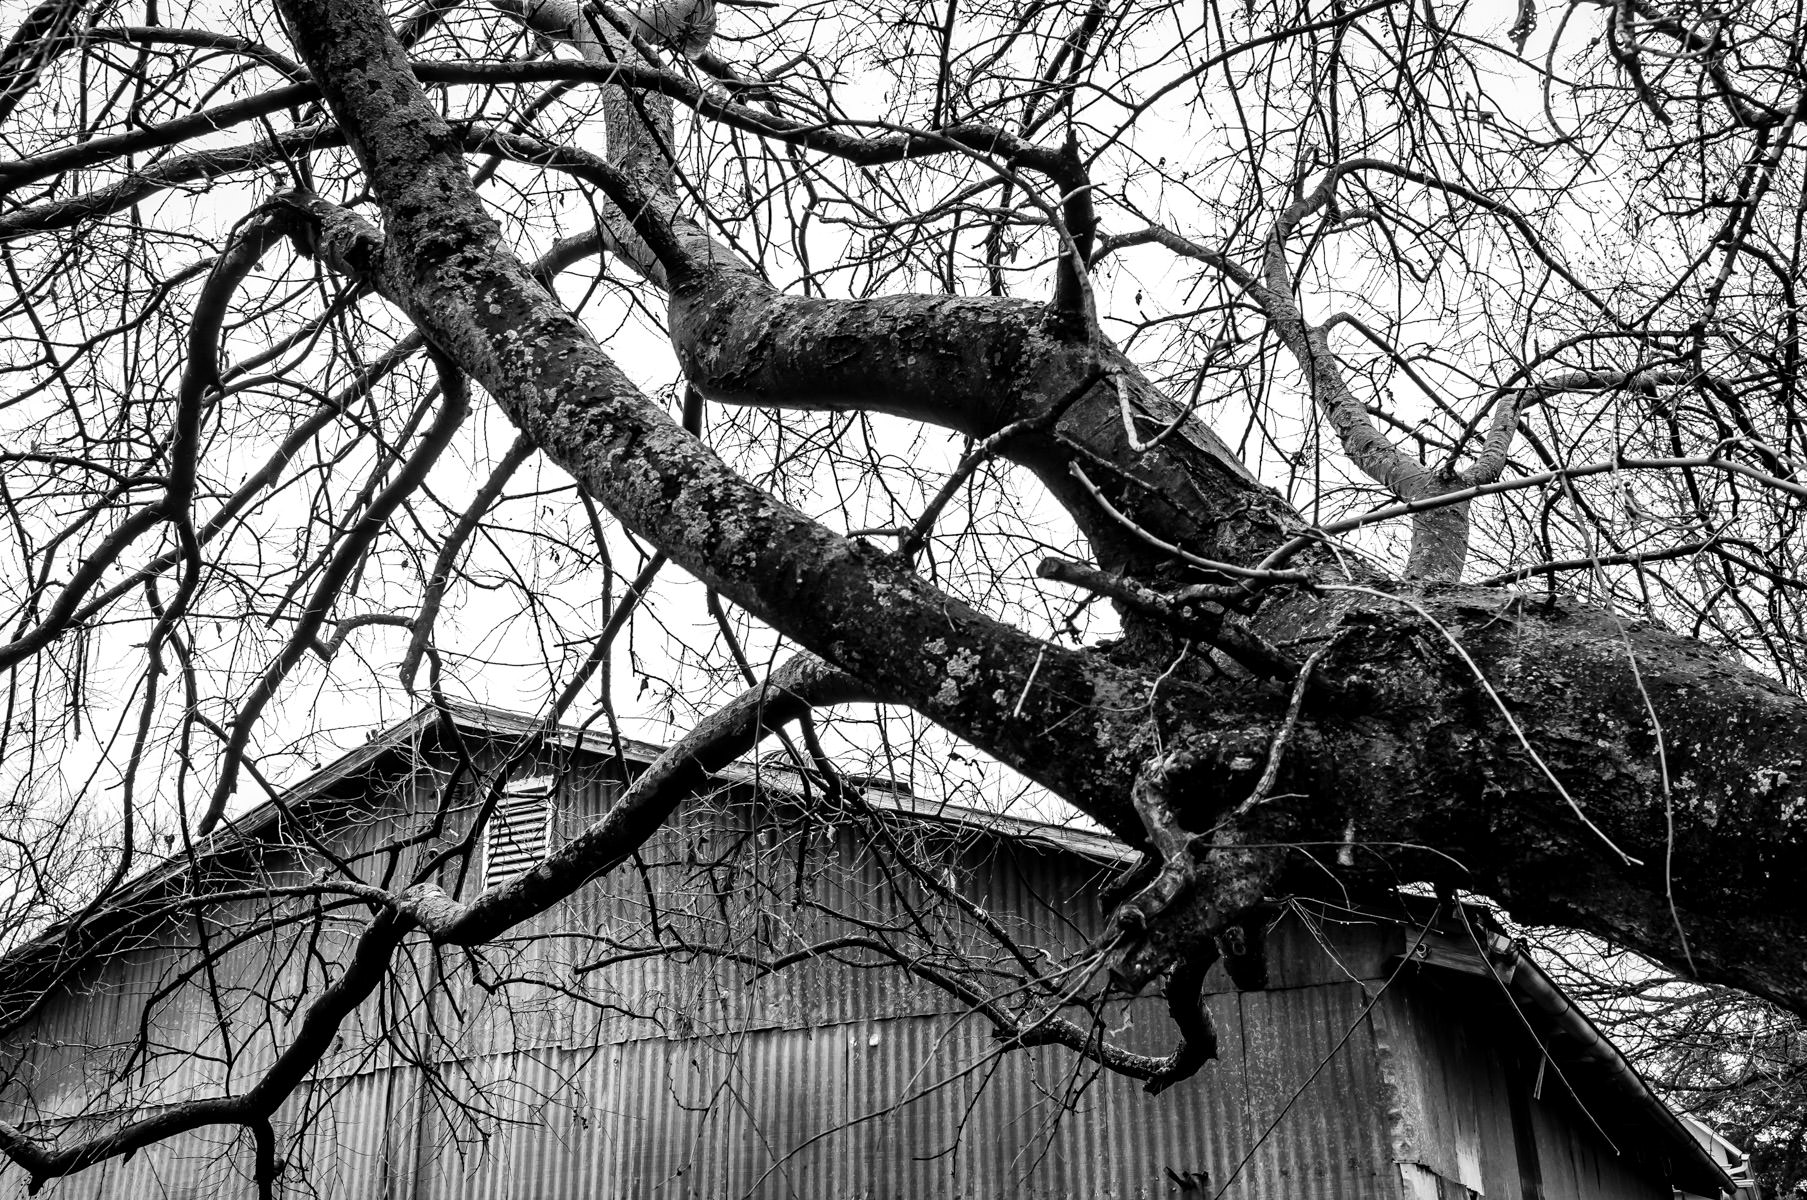 Tree branches spiderweb over a rusting barn in McKinney, Texas.